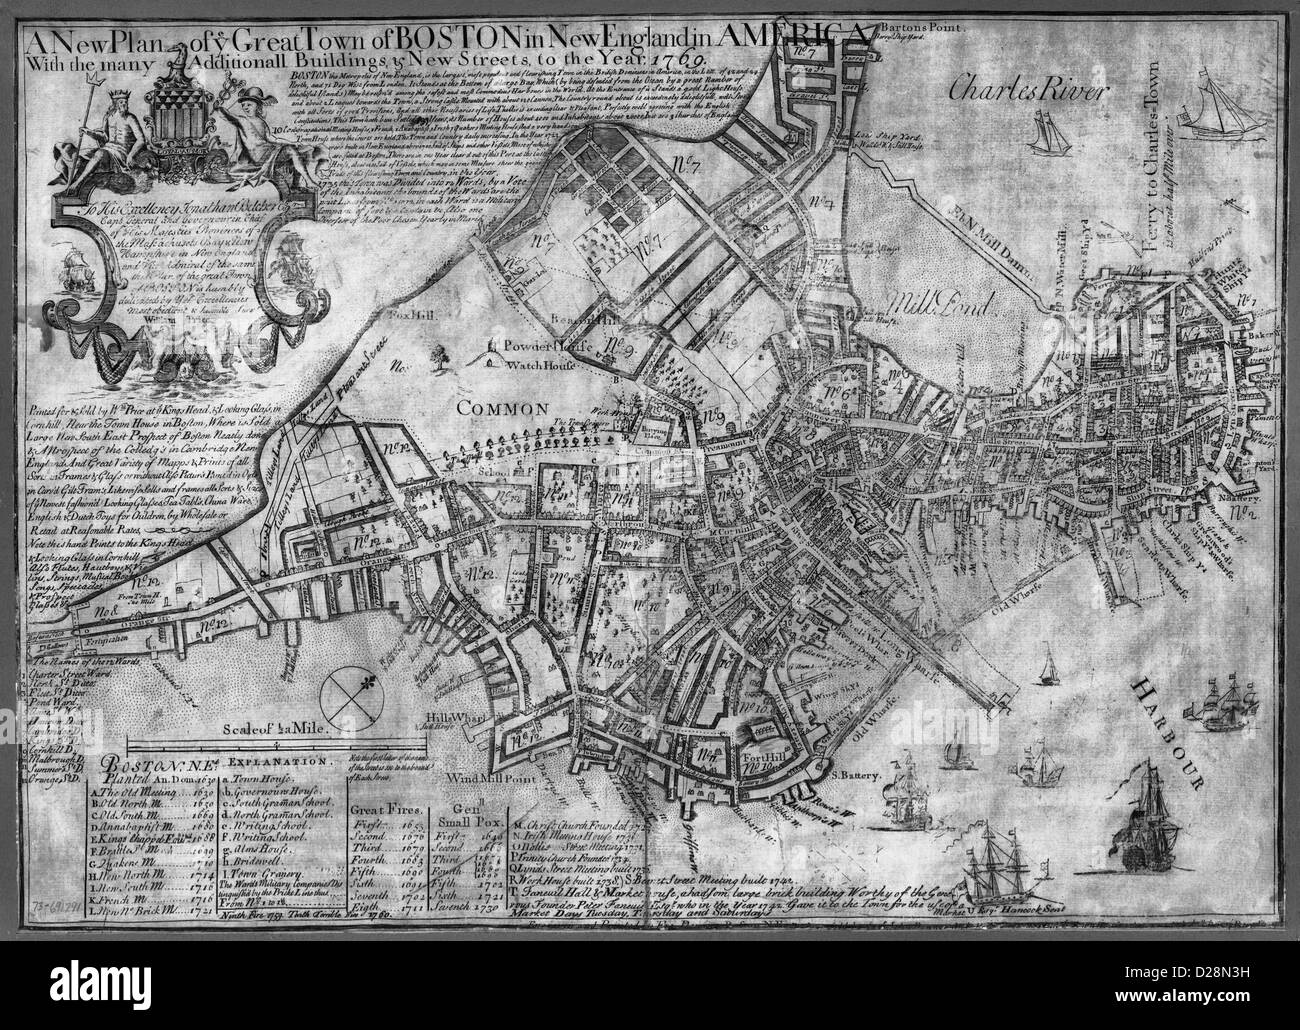 MAP A new plan of ye great town of Boston in New England in America with the many additionall buildings & new - Stock Image